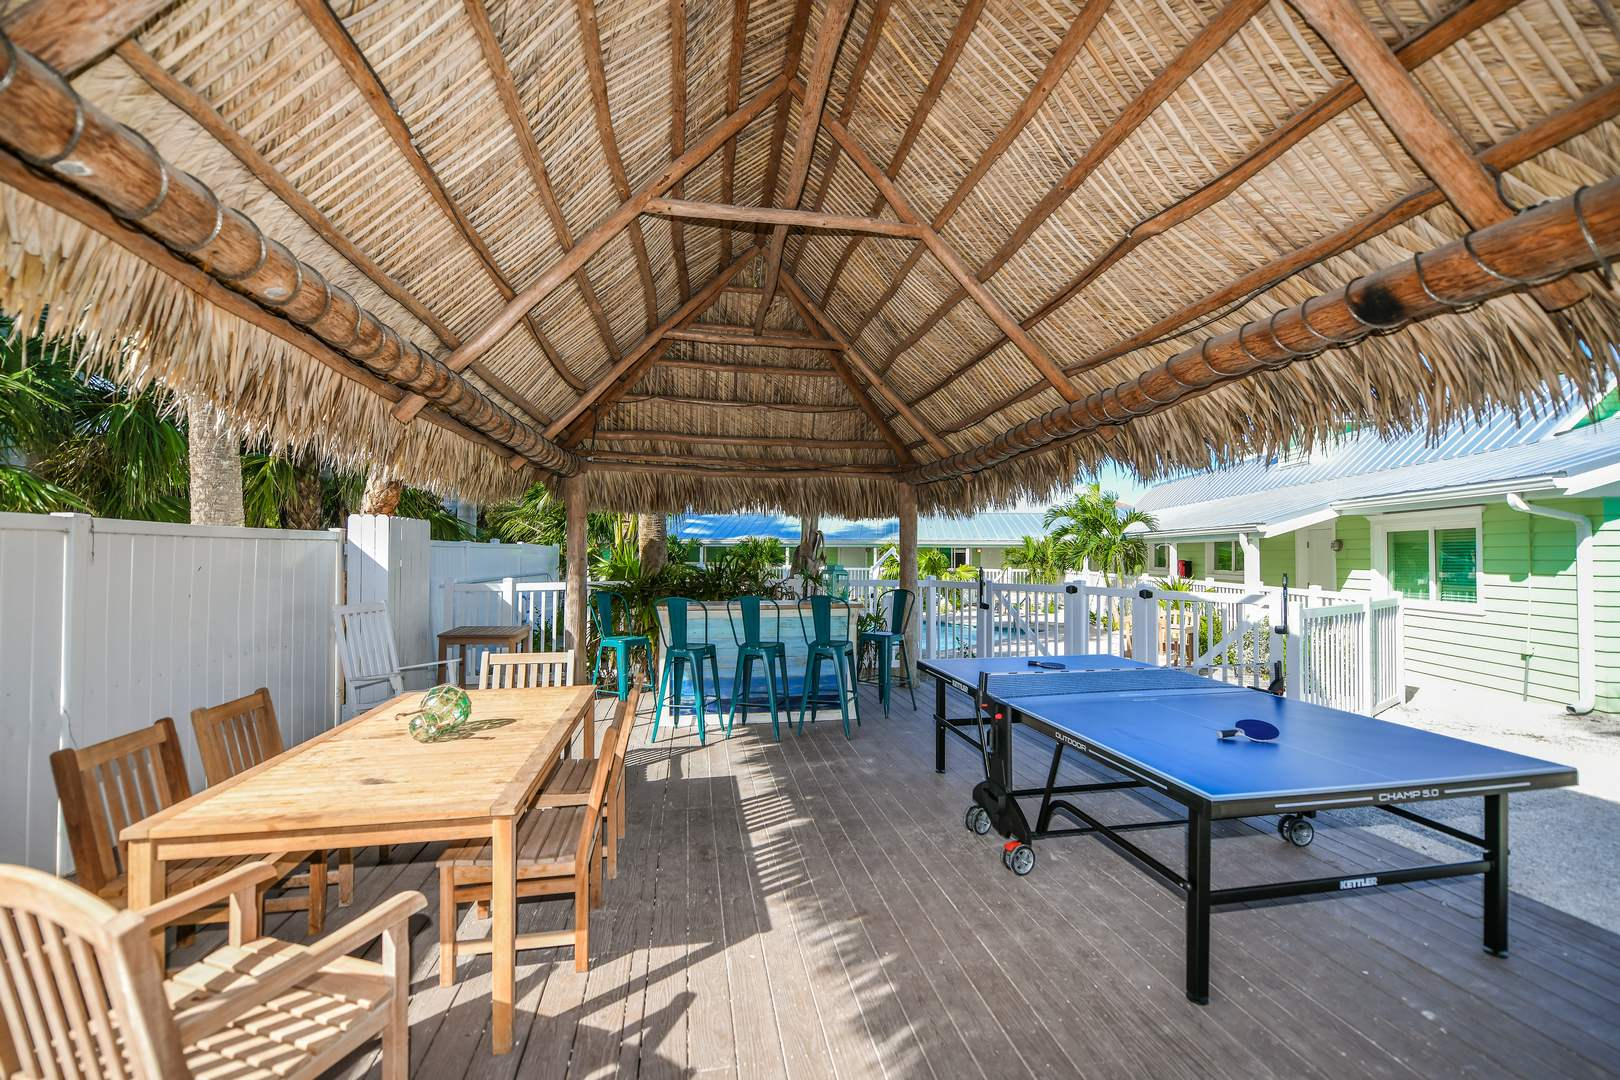 Challenge your frineds to a game of Ping Pong under the tiki